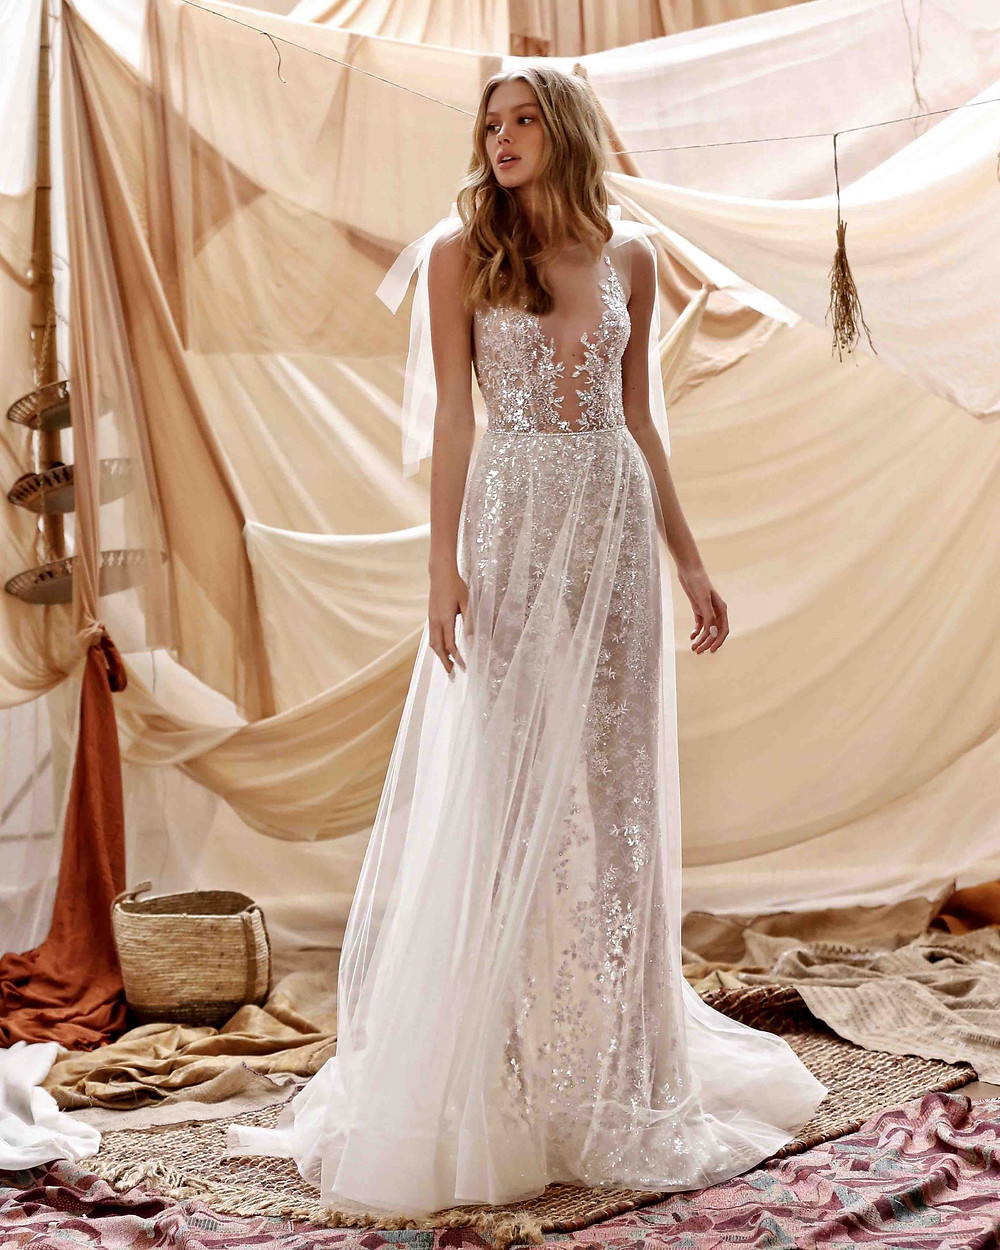 A Berta 2021 flowy wedding dress with a low V, sparkles and ribbons